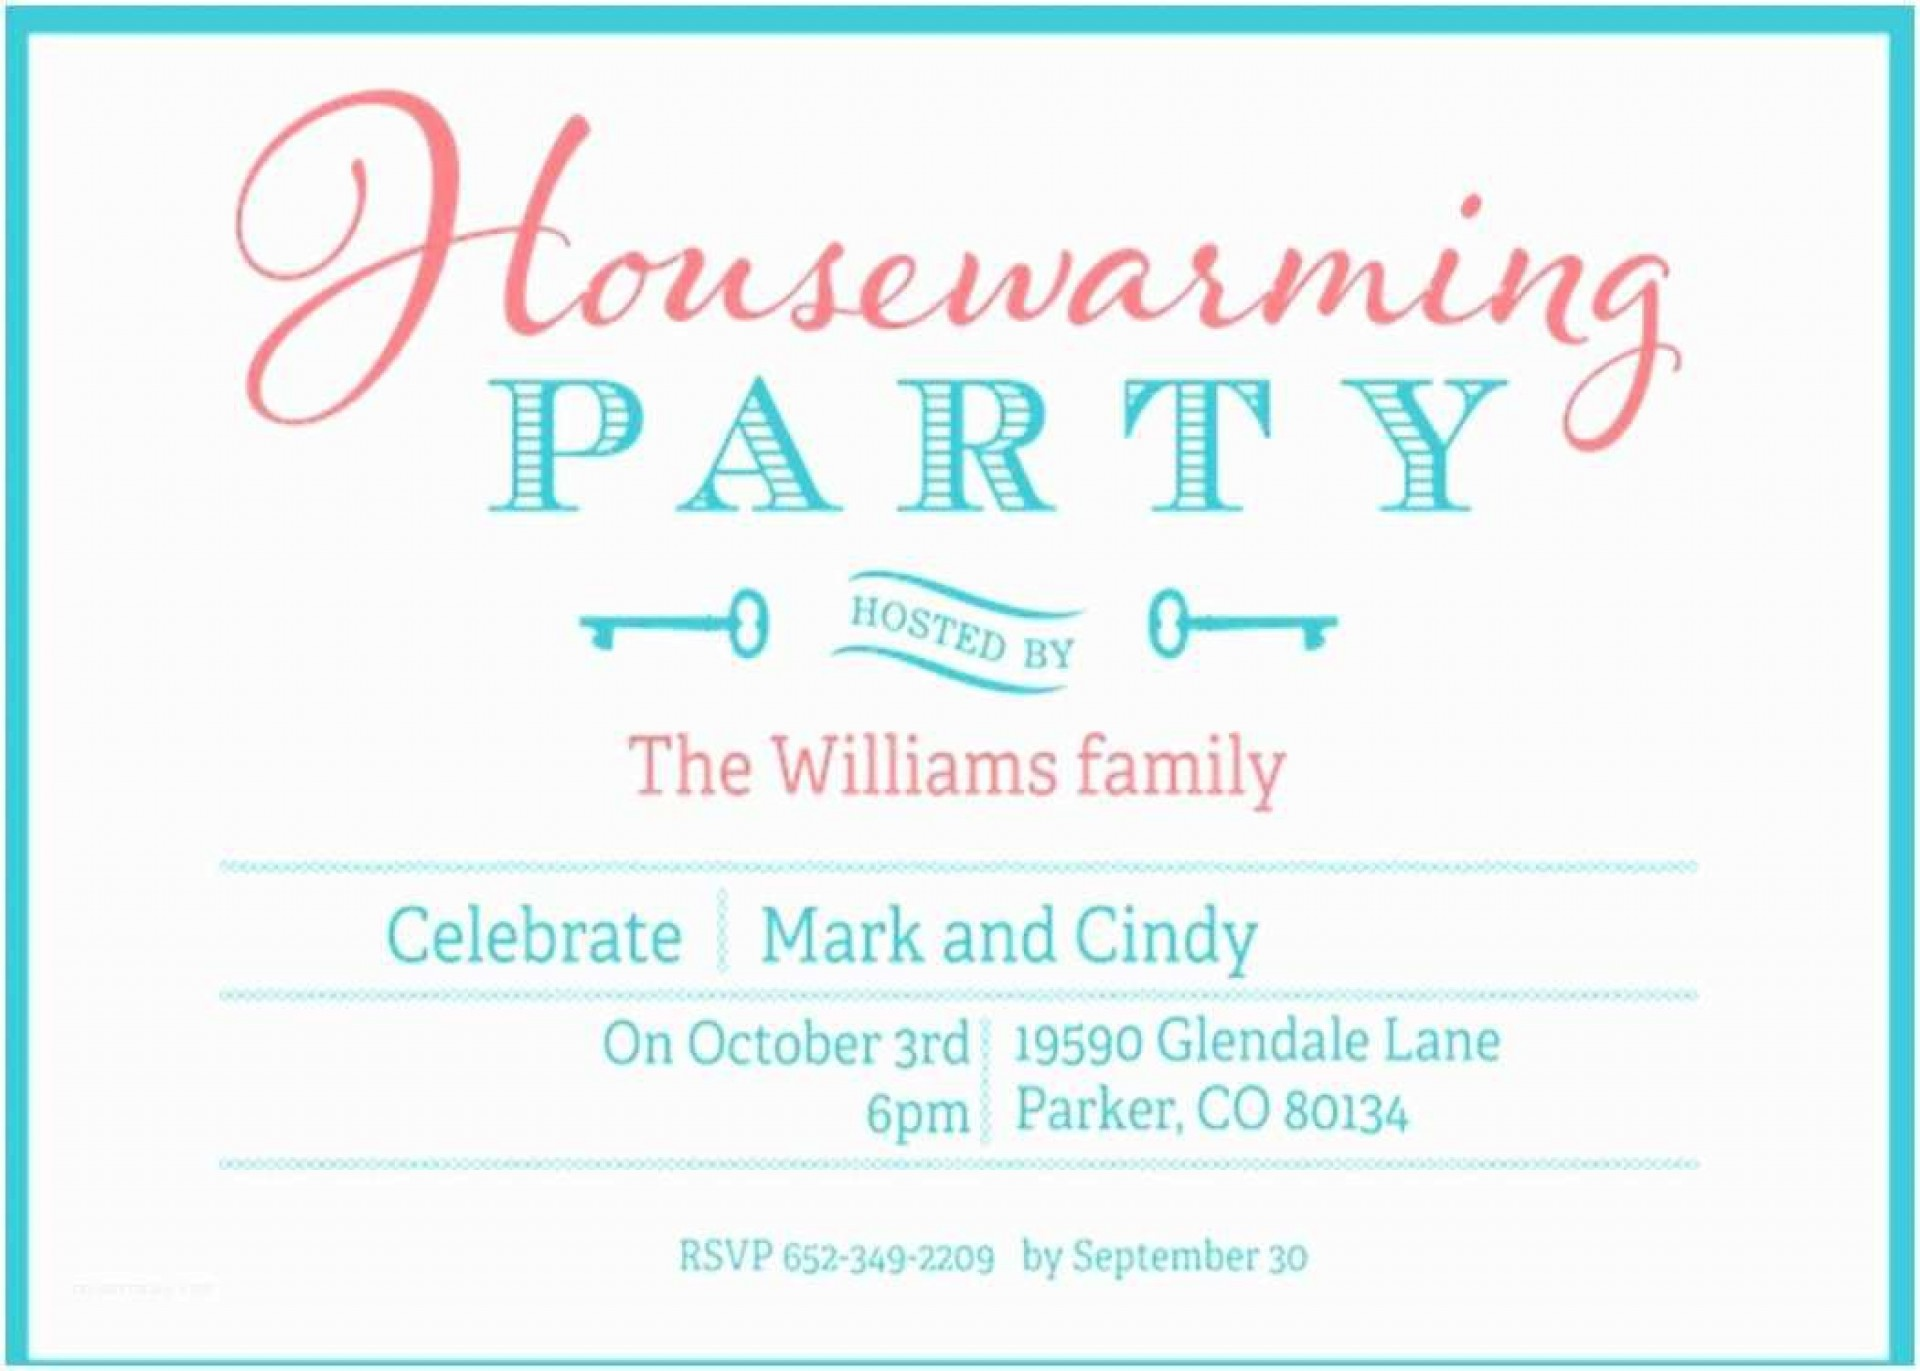 011 Awful Housewarming Party Invitation Template Highest Clarity  Templates Free Download Card1920